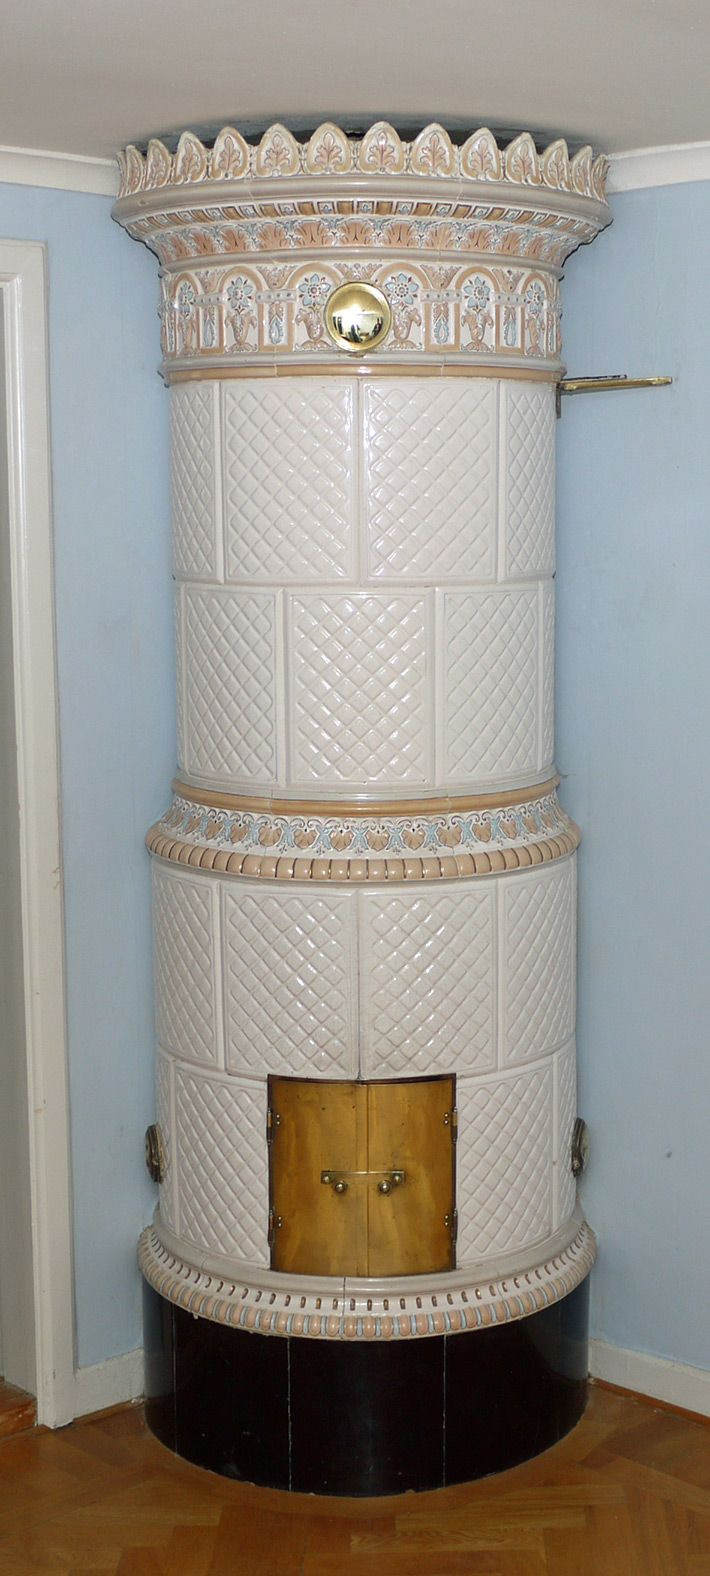 White tiled stove with relief tiles and pastel coloured decorations and a dark brown plinth, ca 1900. Height 215 cm.